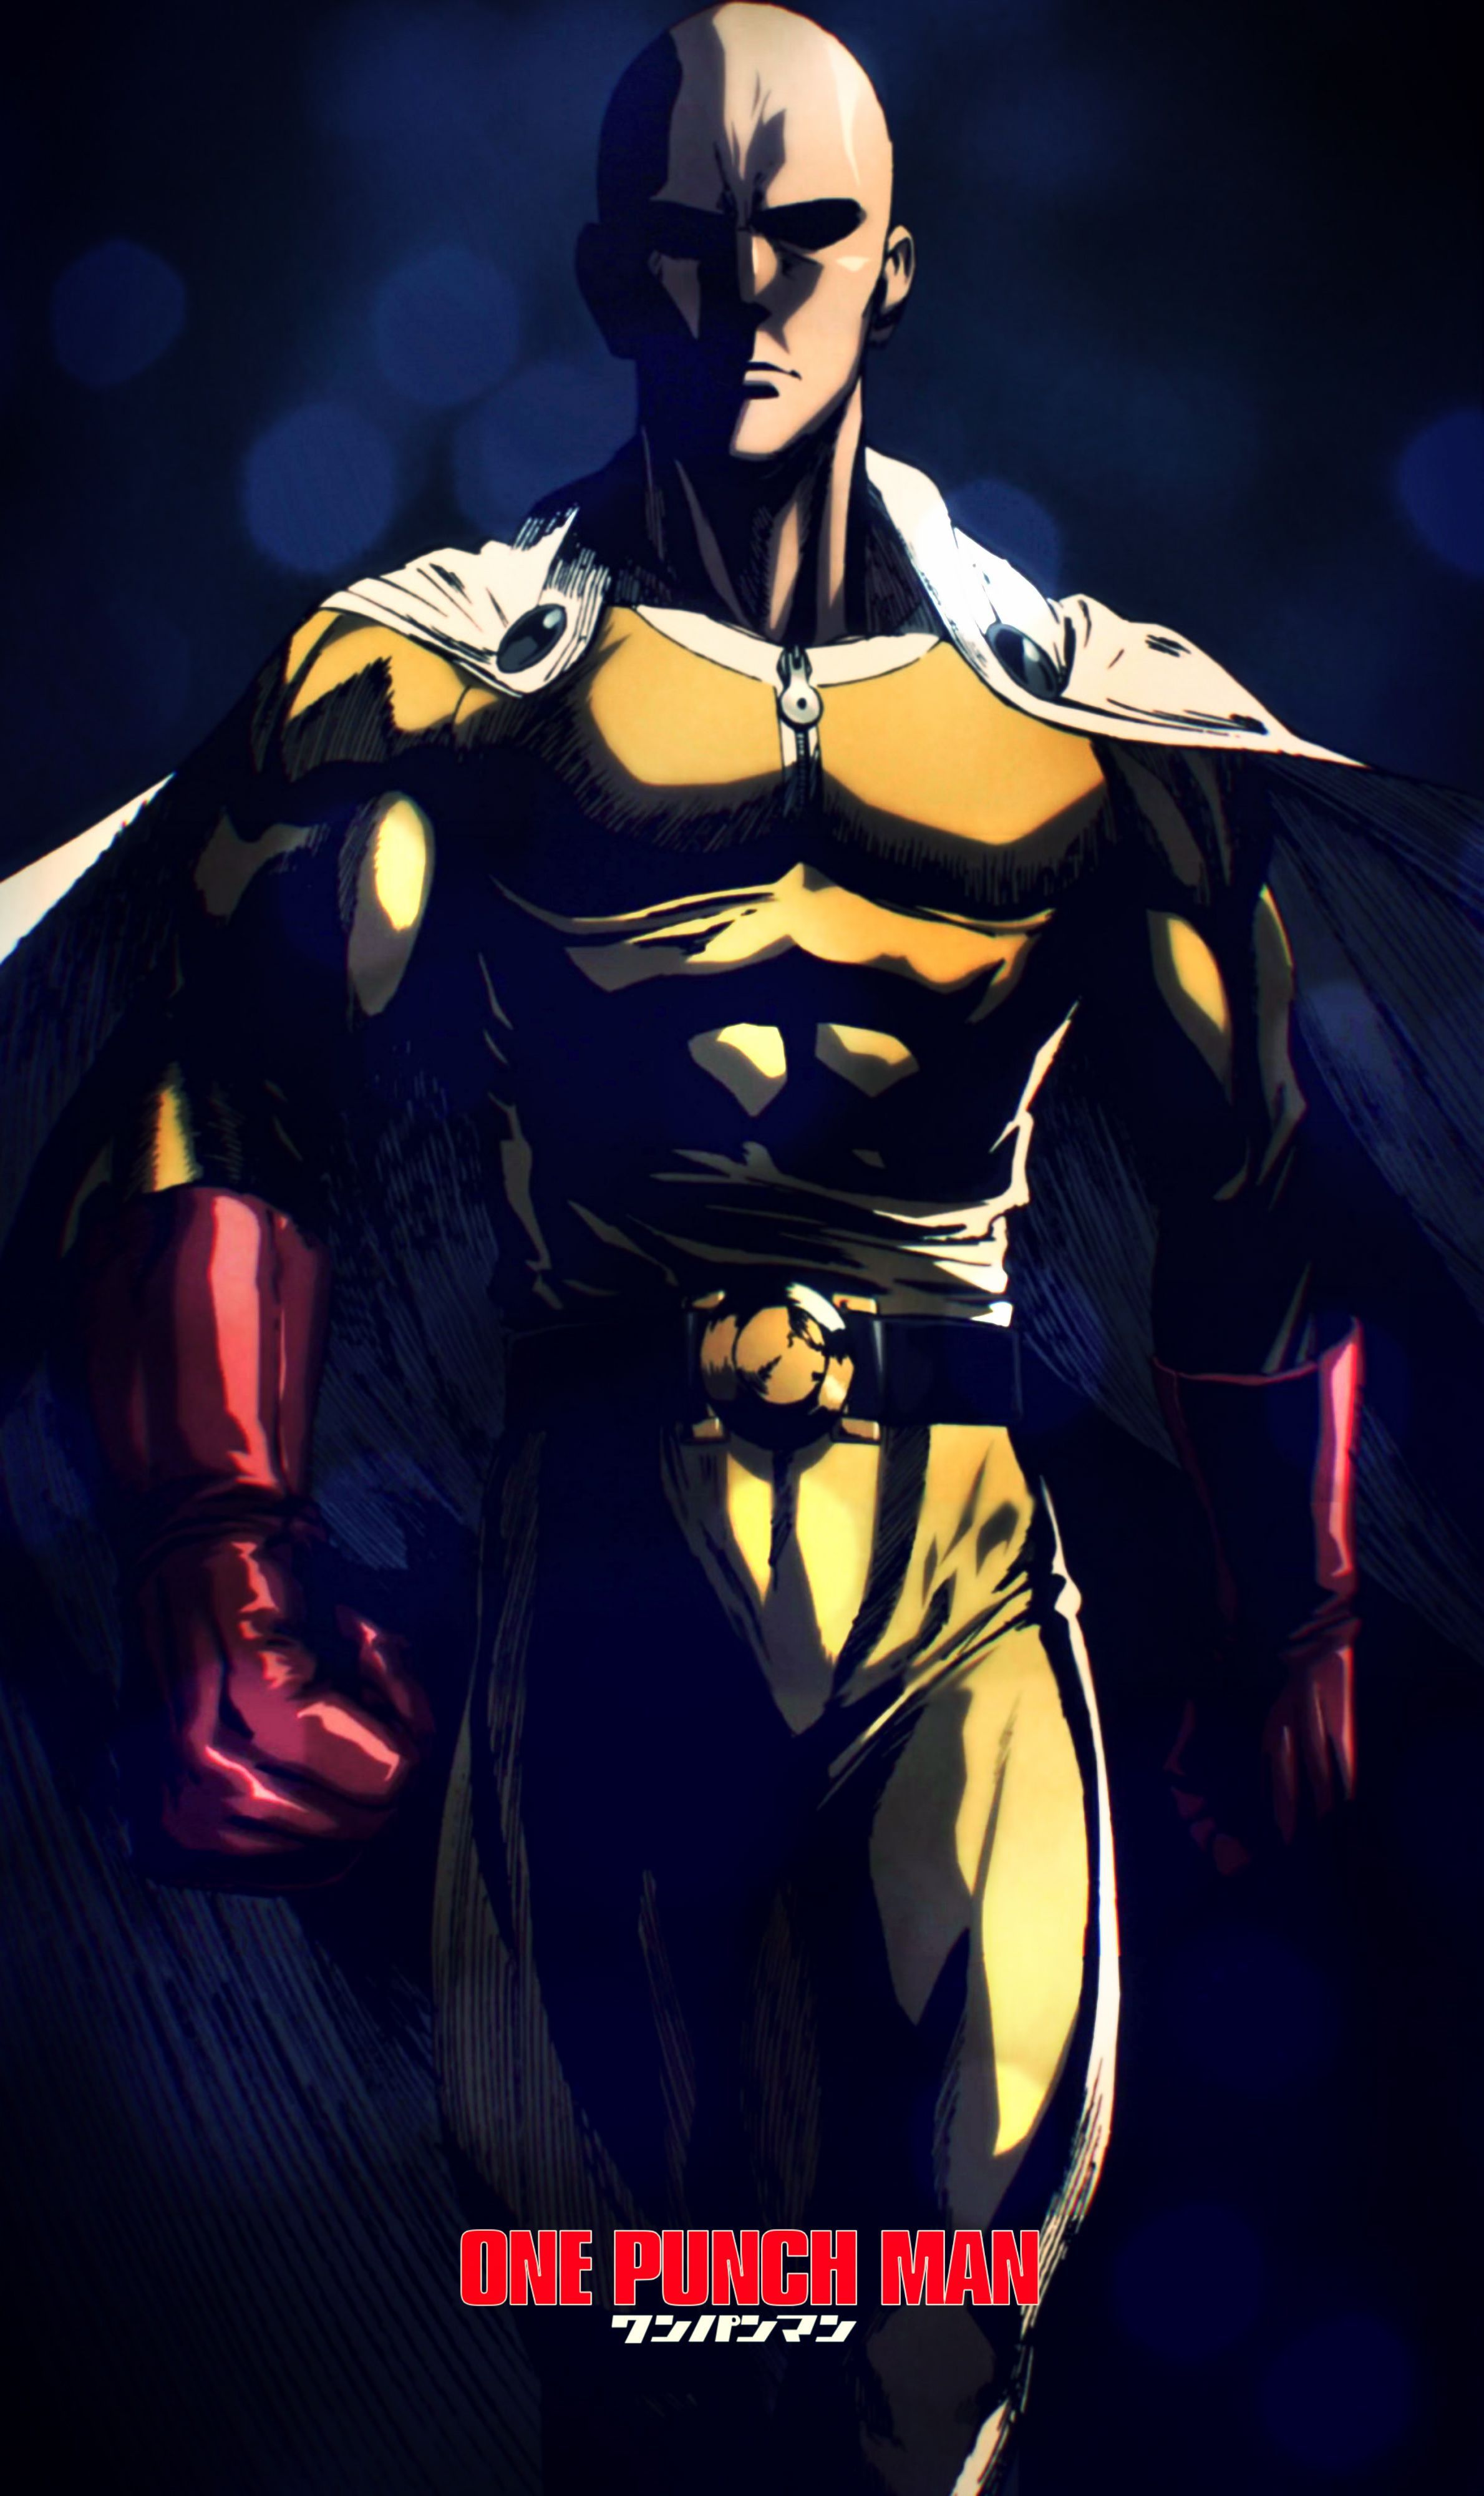 One Punch Man Saison 2 Episode 11 Streaming : punch, saison, episode, streaming, Wallpaper, Iphone, SciFi